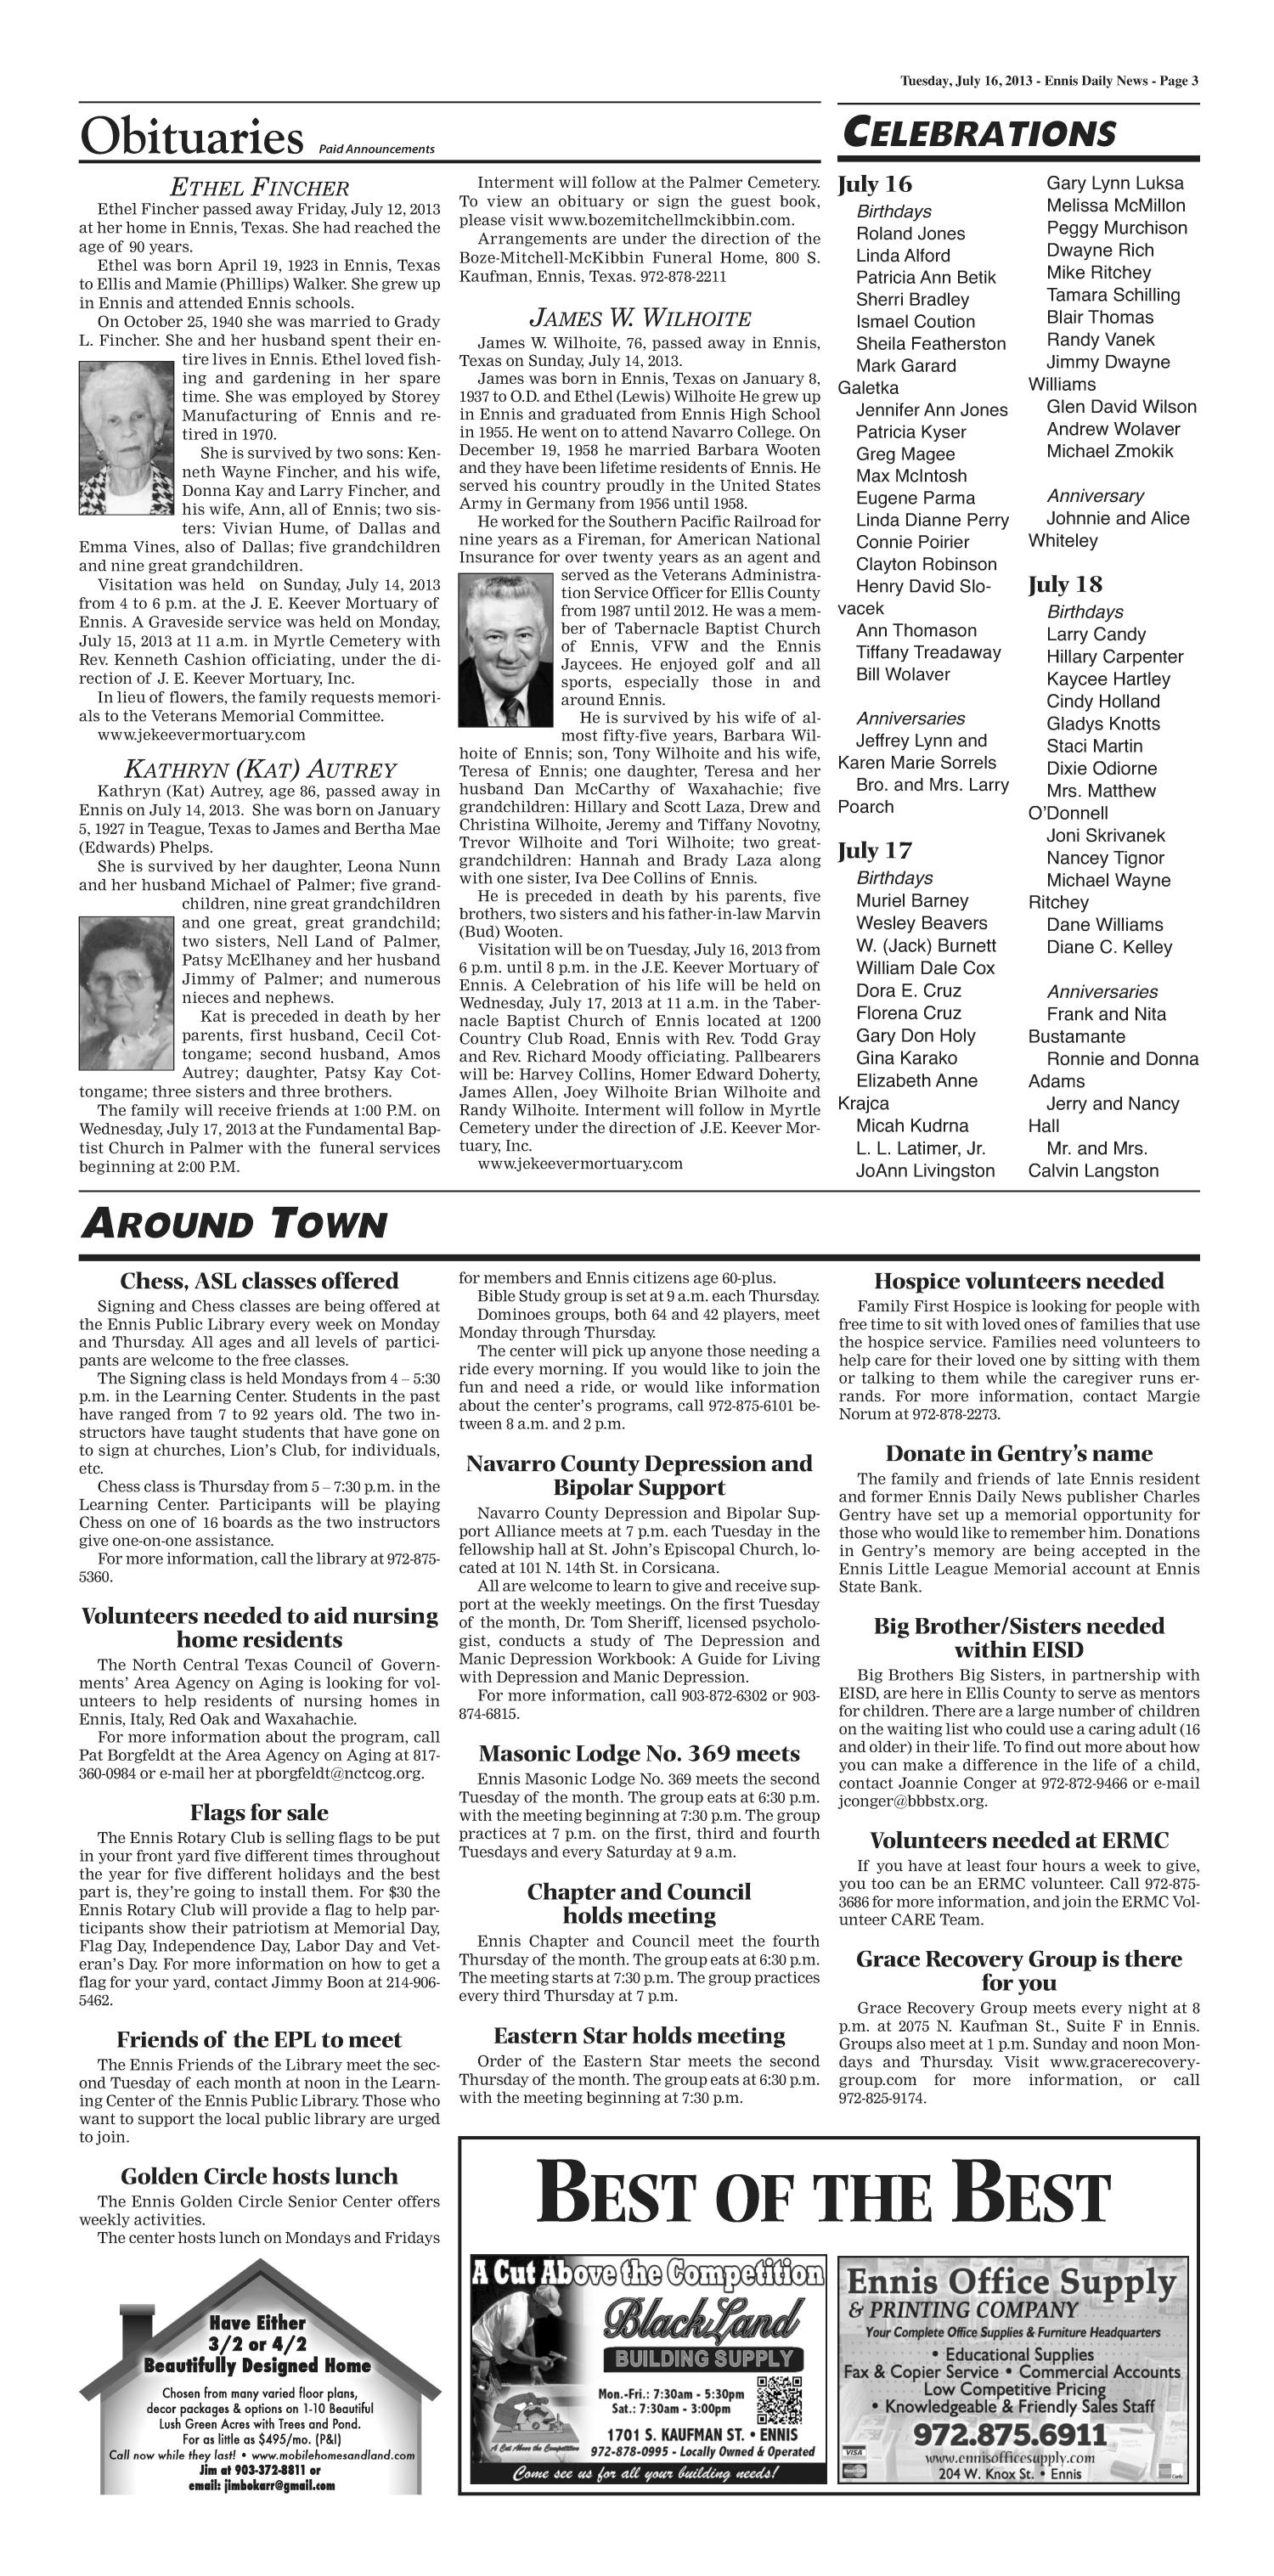 The Ennis Daily News (Ennis, Tex.), Ed. 1 Tuesday, July 16, 2013   Page 3  Of 8   The Portal To Texas History